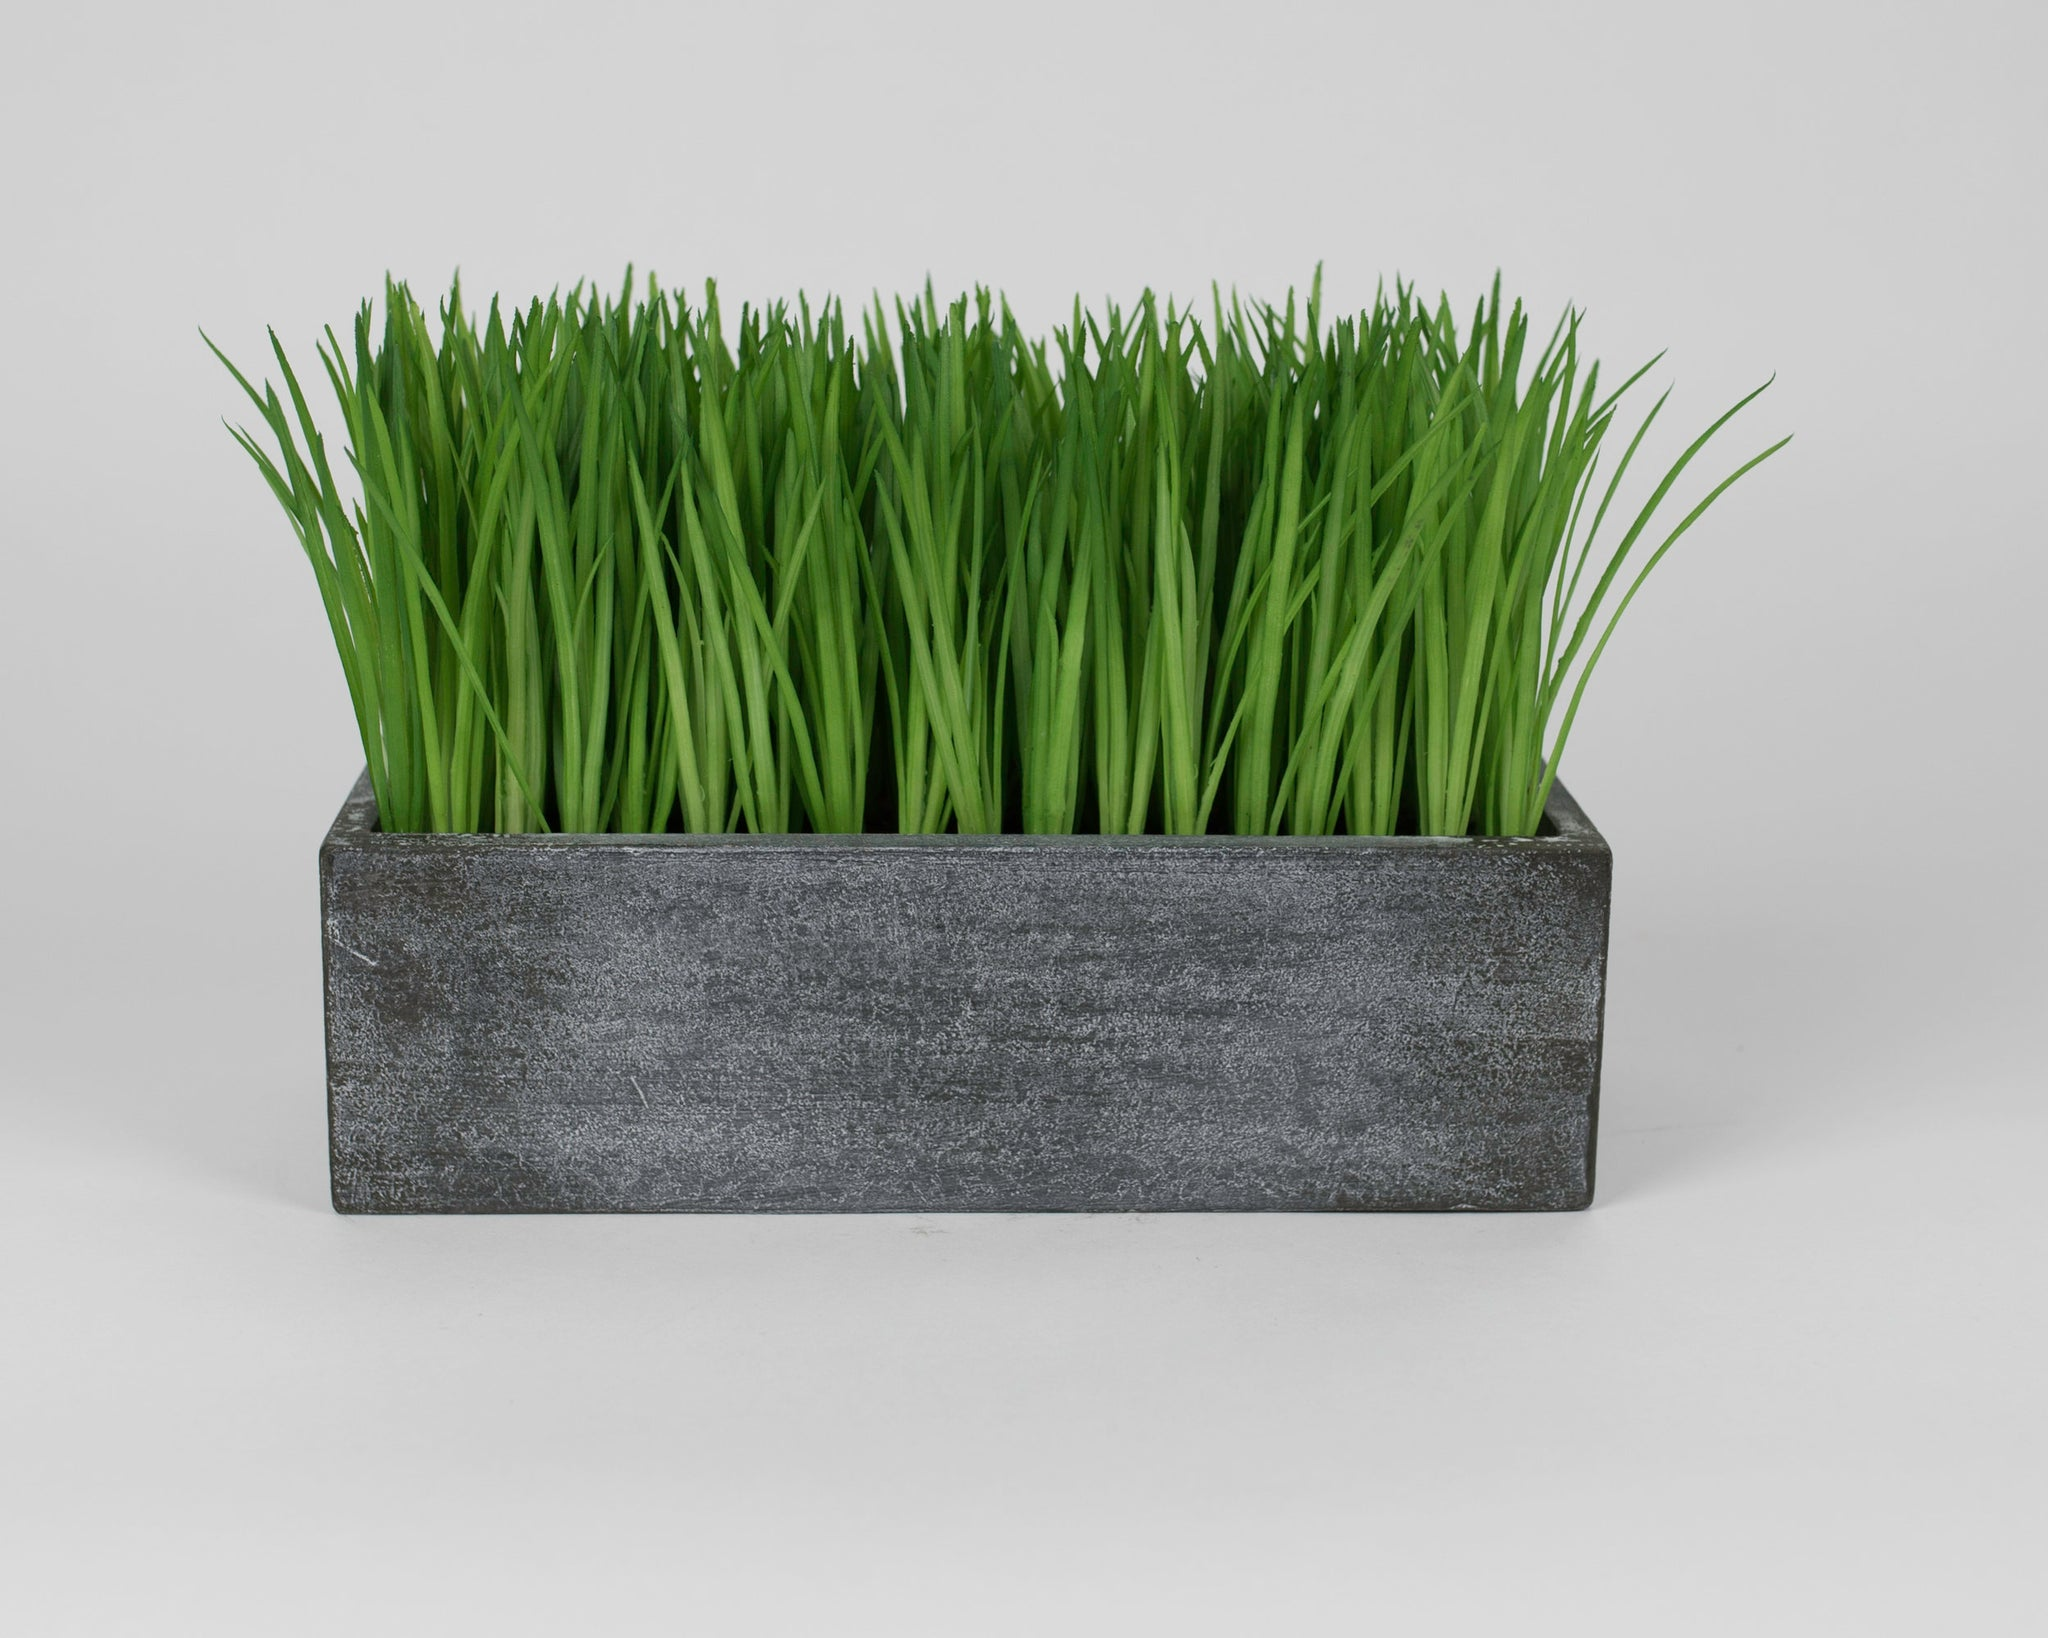 Grass in Wooden Holder